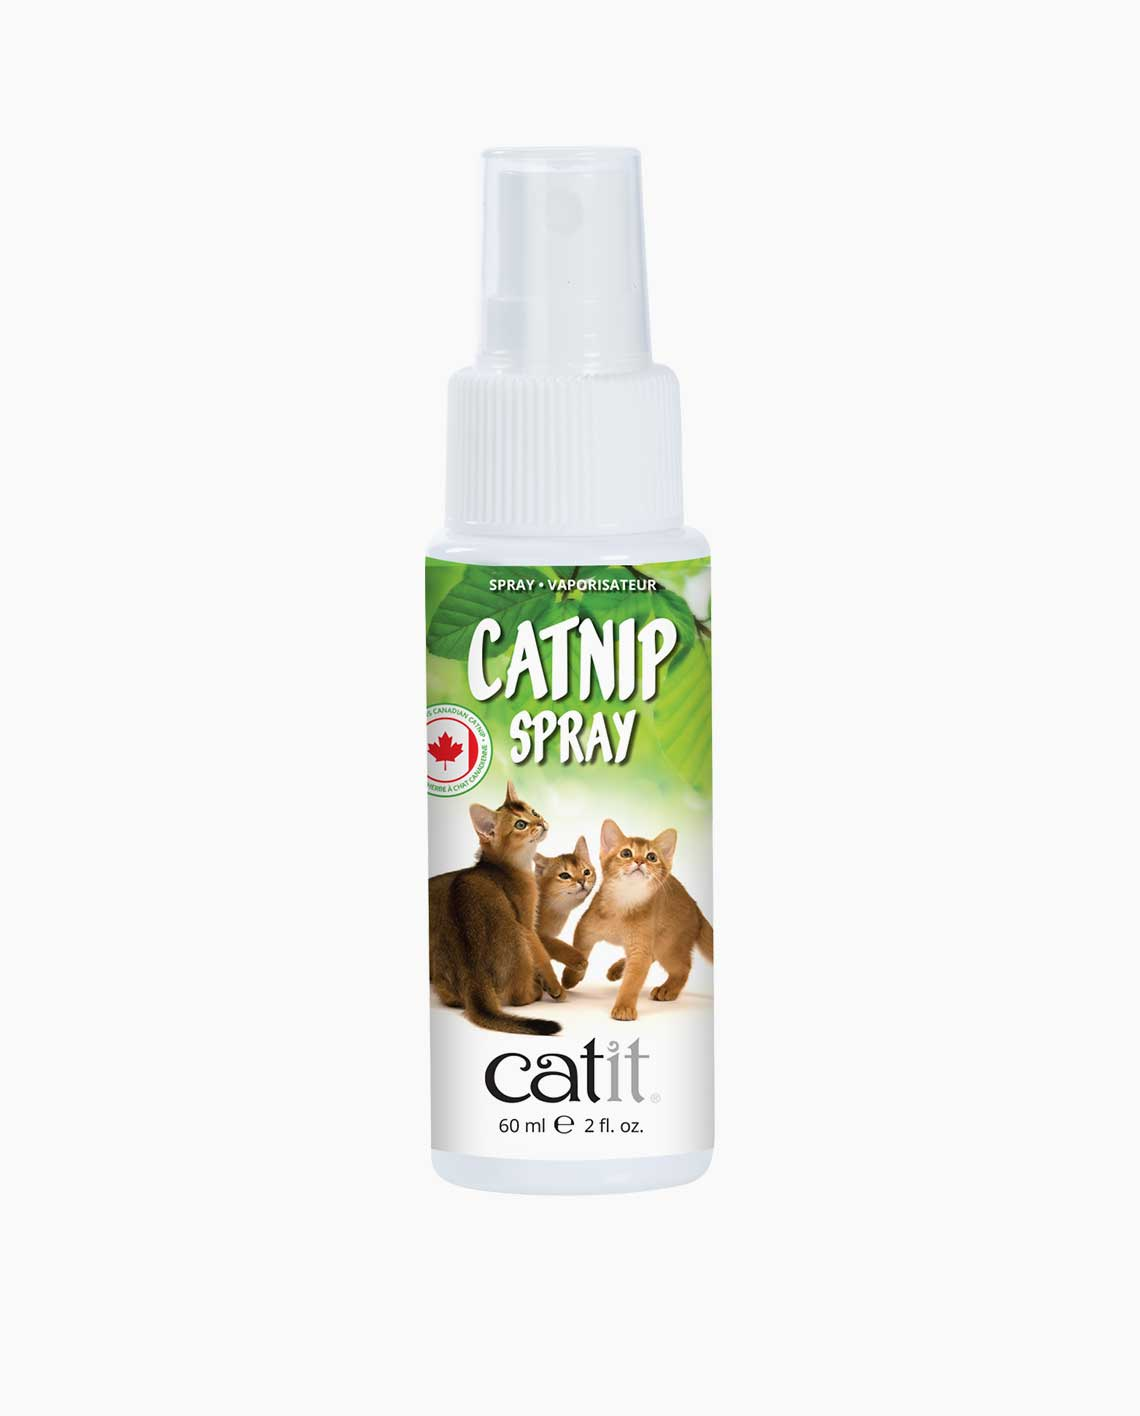 Image of the bottle of the catnip spray